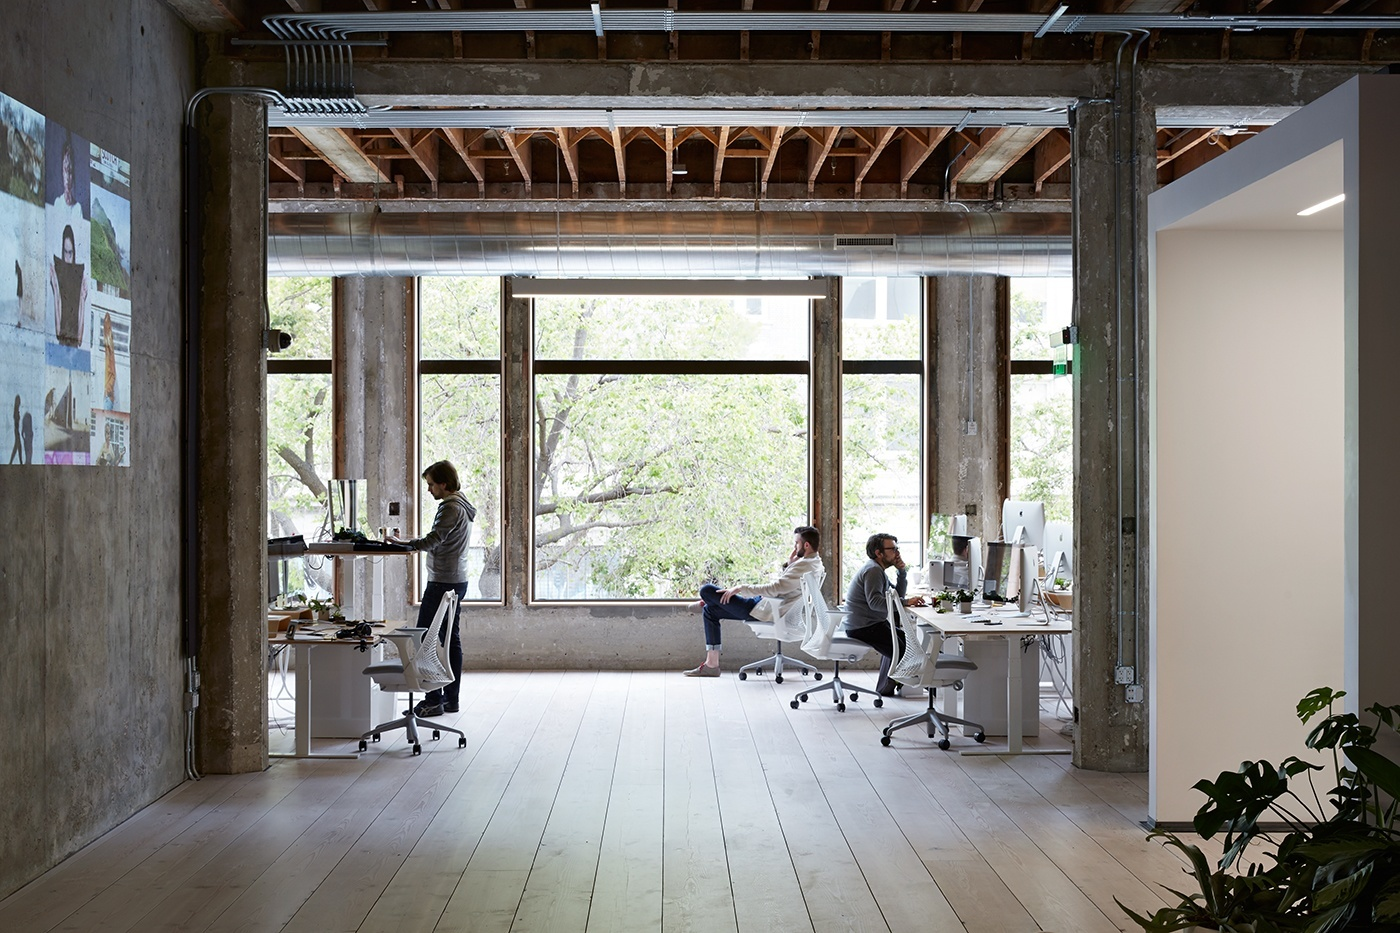 A Look Inside Vsco S Amazing Headquarters In Oakland